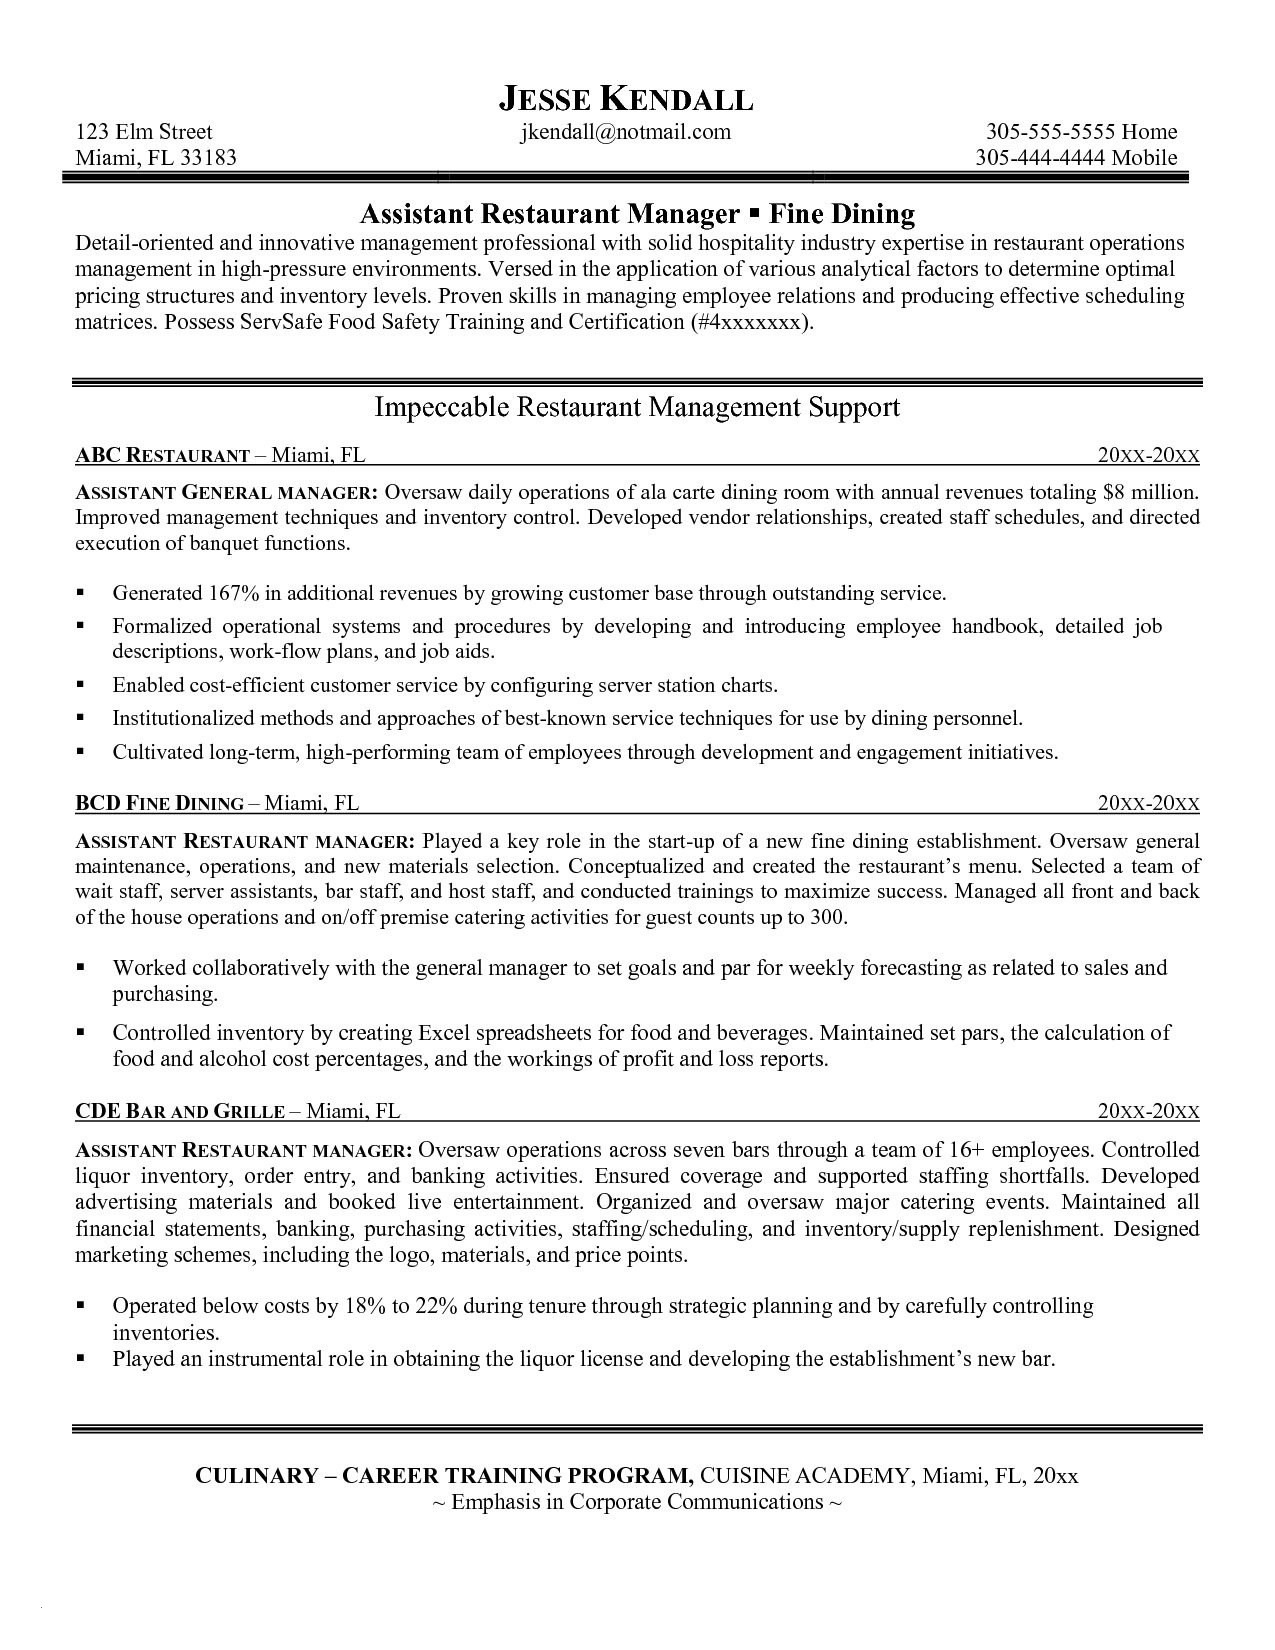 Operations Manager Resume Template - Restaurant General Manager Resume Paragraphrewriter